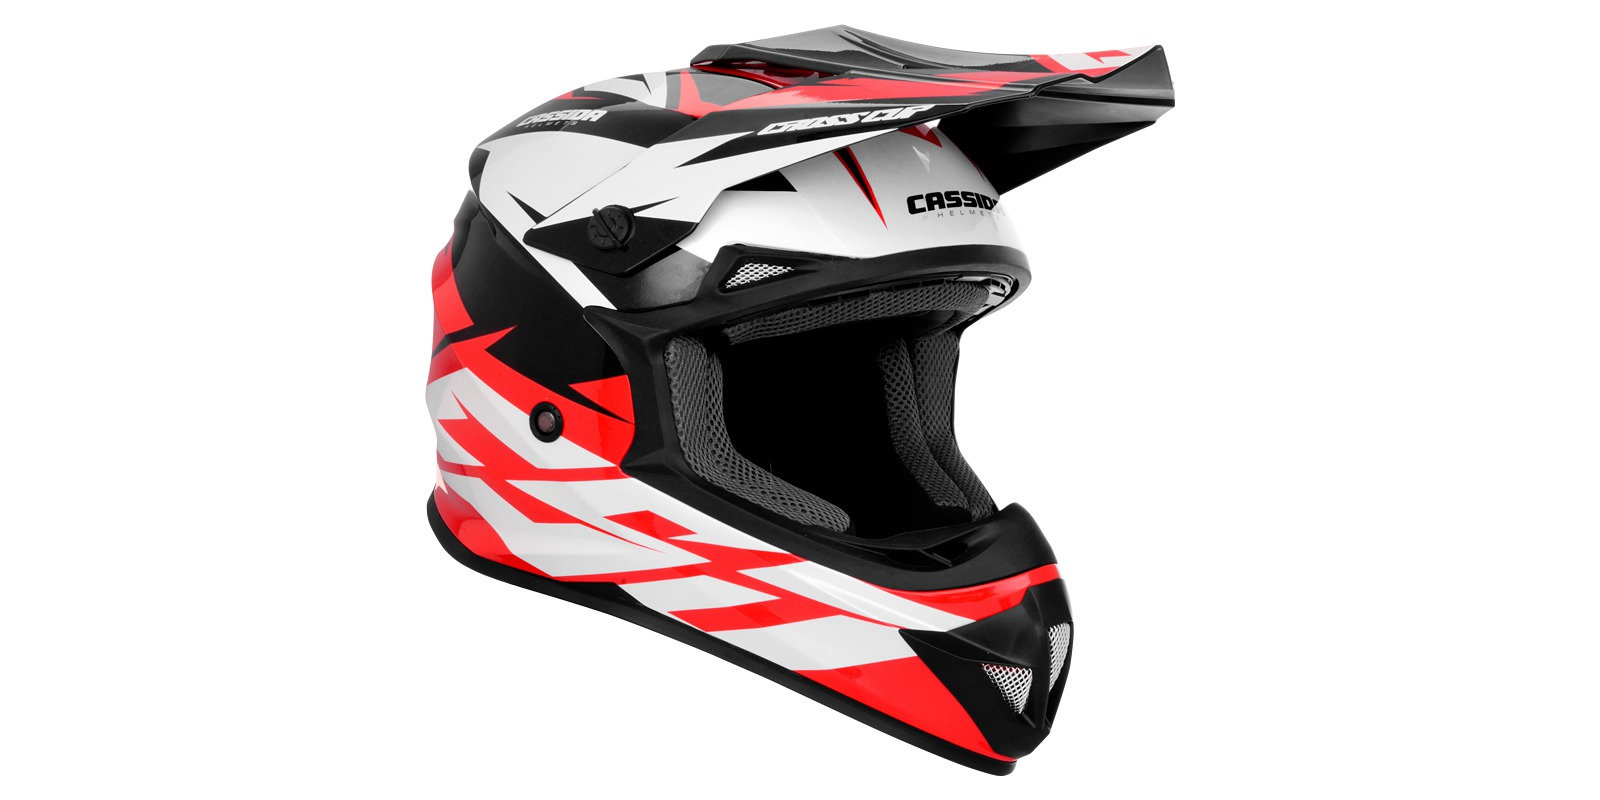 Cassida CROSS CUP 2 white/red